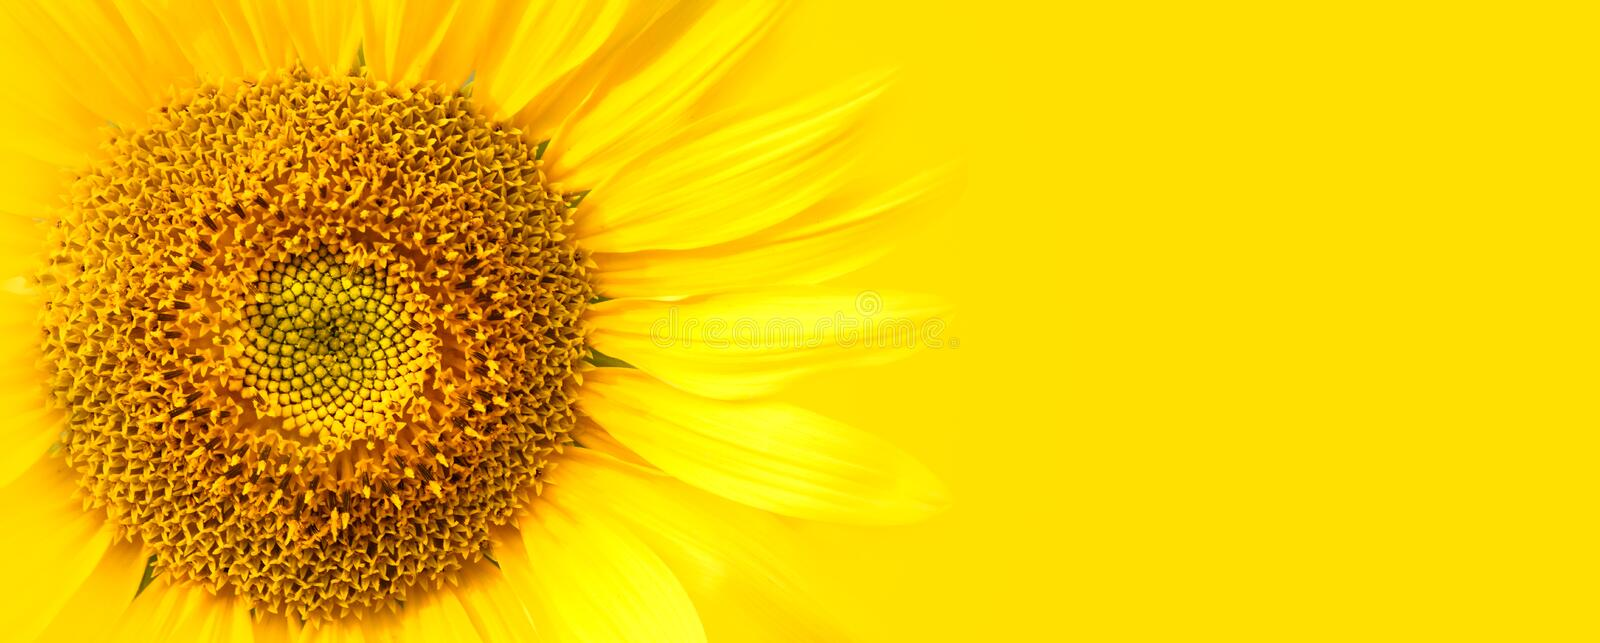 Sunflower close up details on yellow banner wide background macro photo. Concept for summer, sun, sunshine, summer holidays travel royalty free stock image